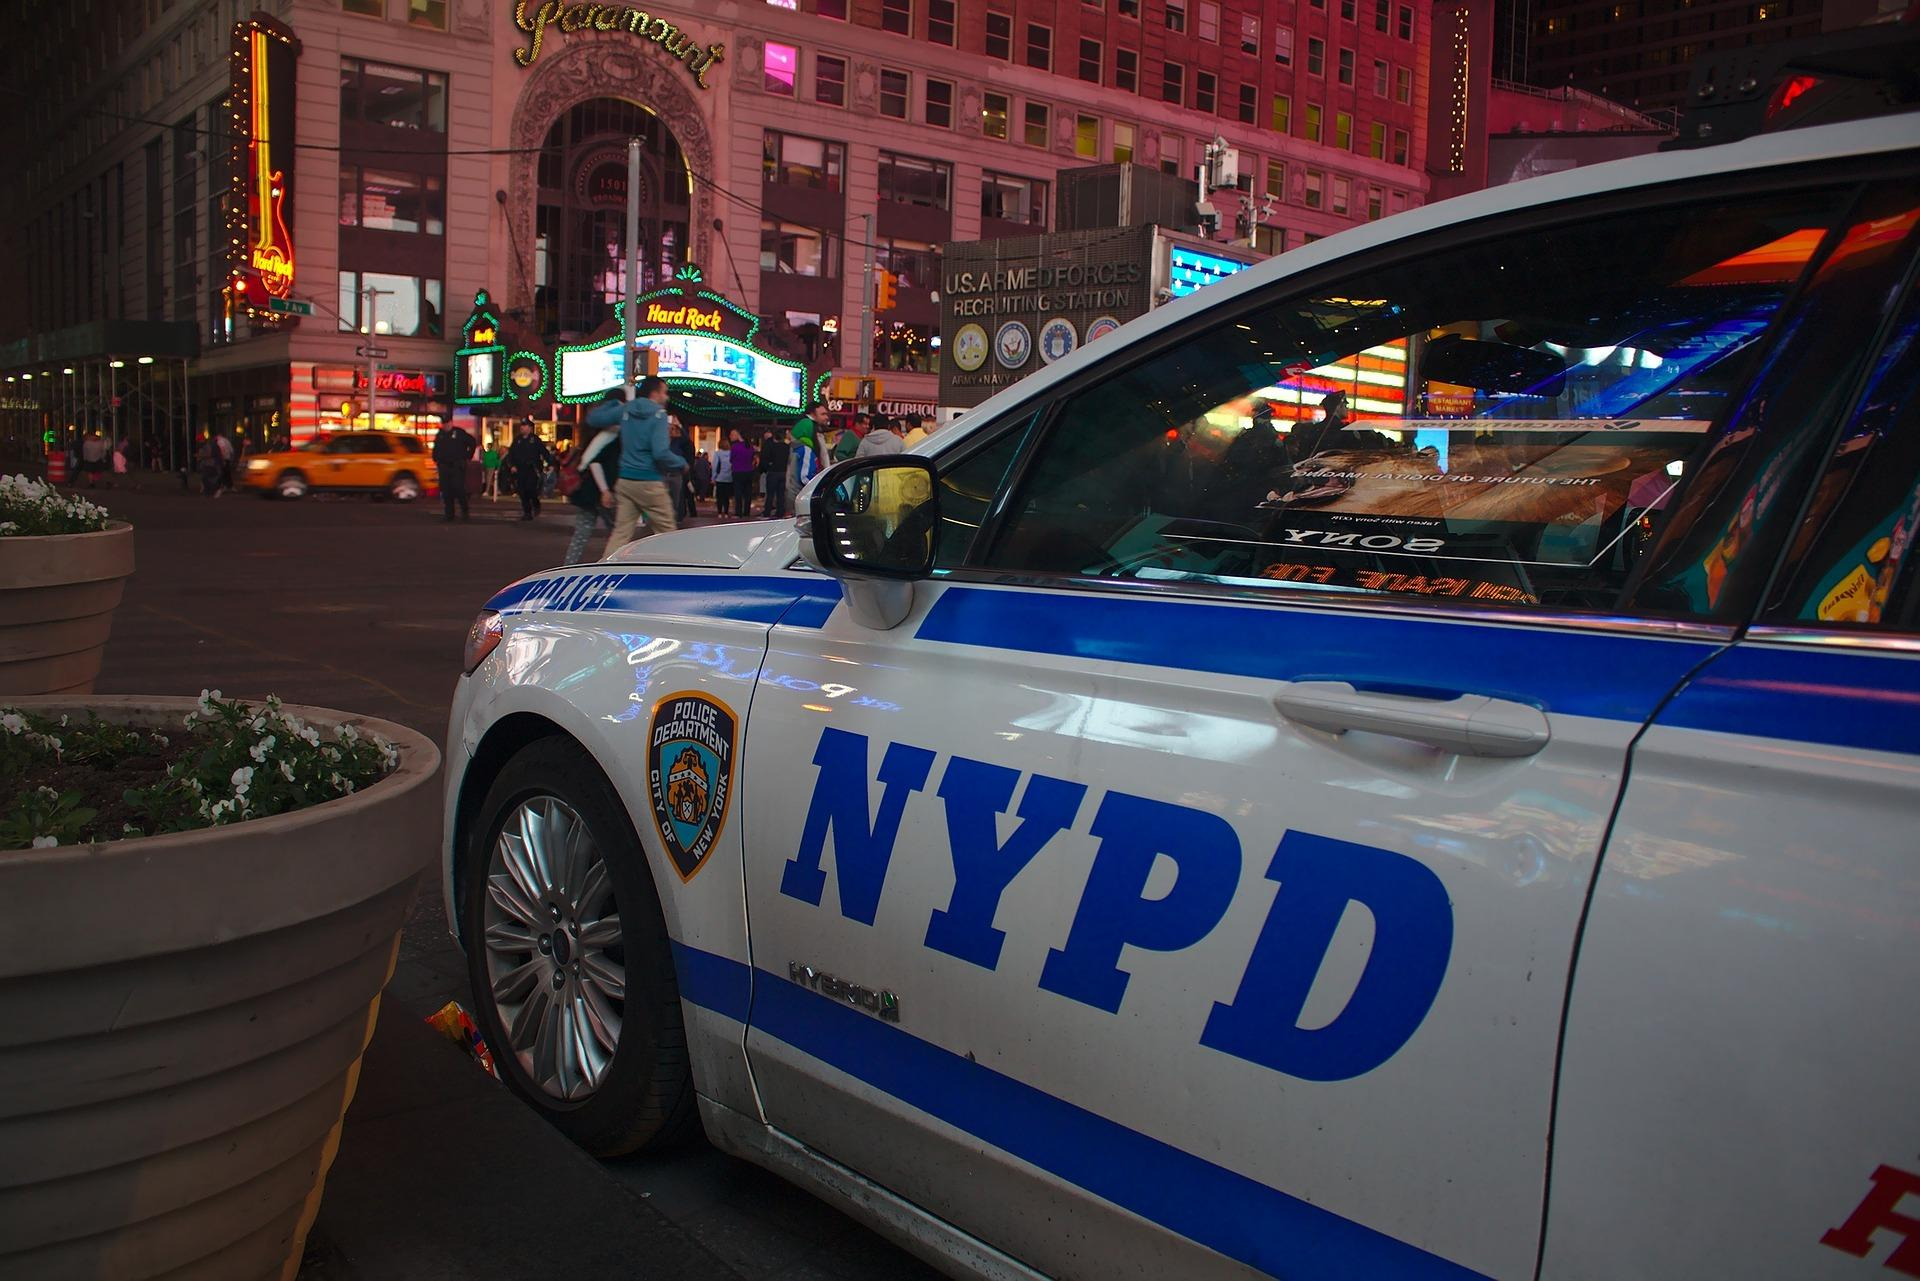 nypd-780387_1920